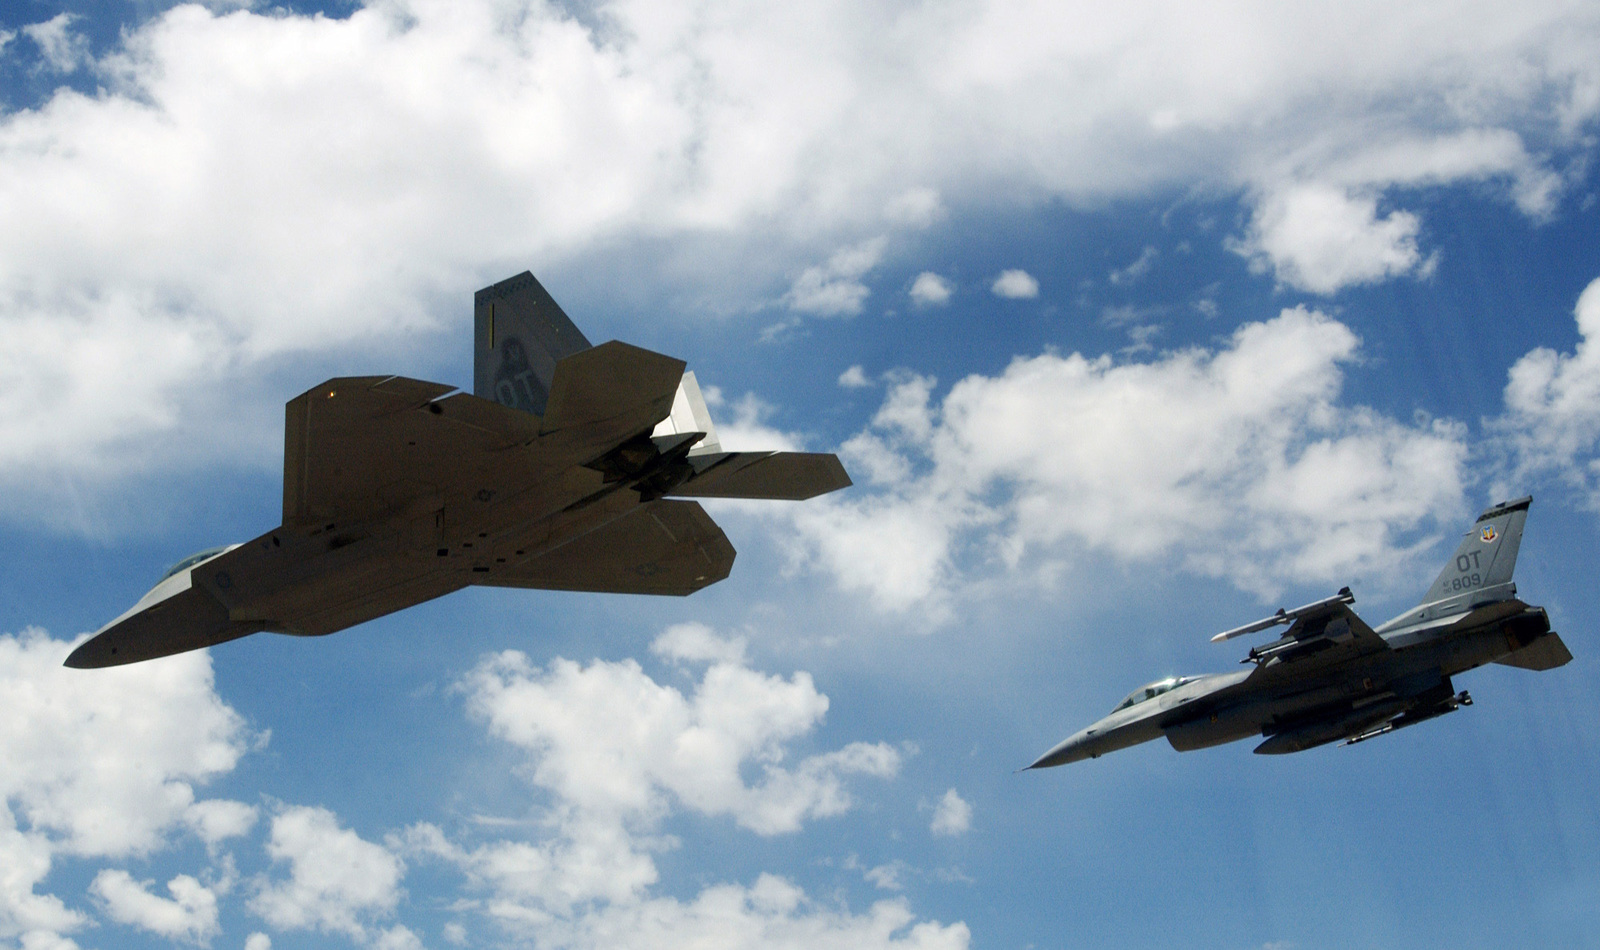 A US Air Force (USAF) F/A-22 Raptor, flown by USAF Major (MAJ) David Thole, 422nd Test and Evaluation Squadron (TES), Nellis Air Force Base (AFB), Nevada (NV), flies in formation on a training mission alongside a USAF F-16 Fighting Falcon fighter, flown by MAJ Alex Grynkewich, 53rd Test and Evaluation Group (TEG), Nellis AFB, NV